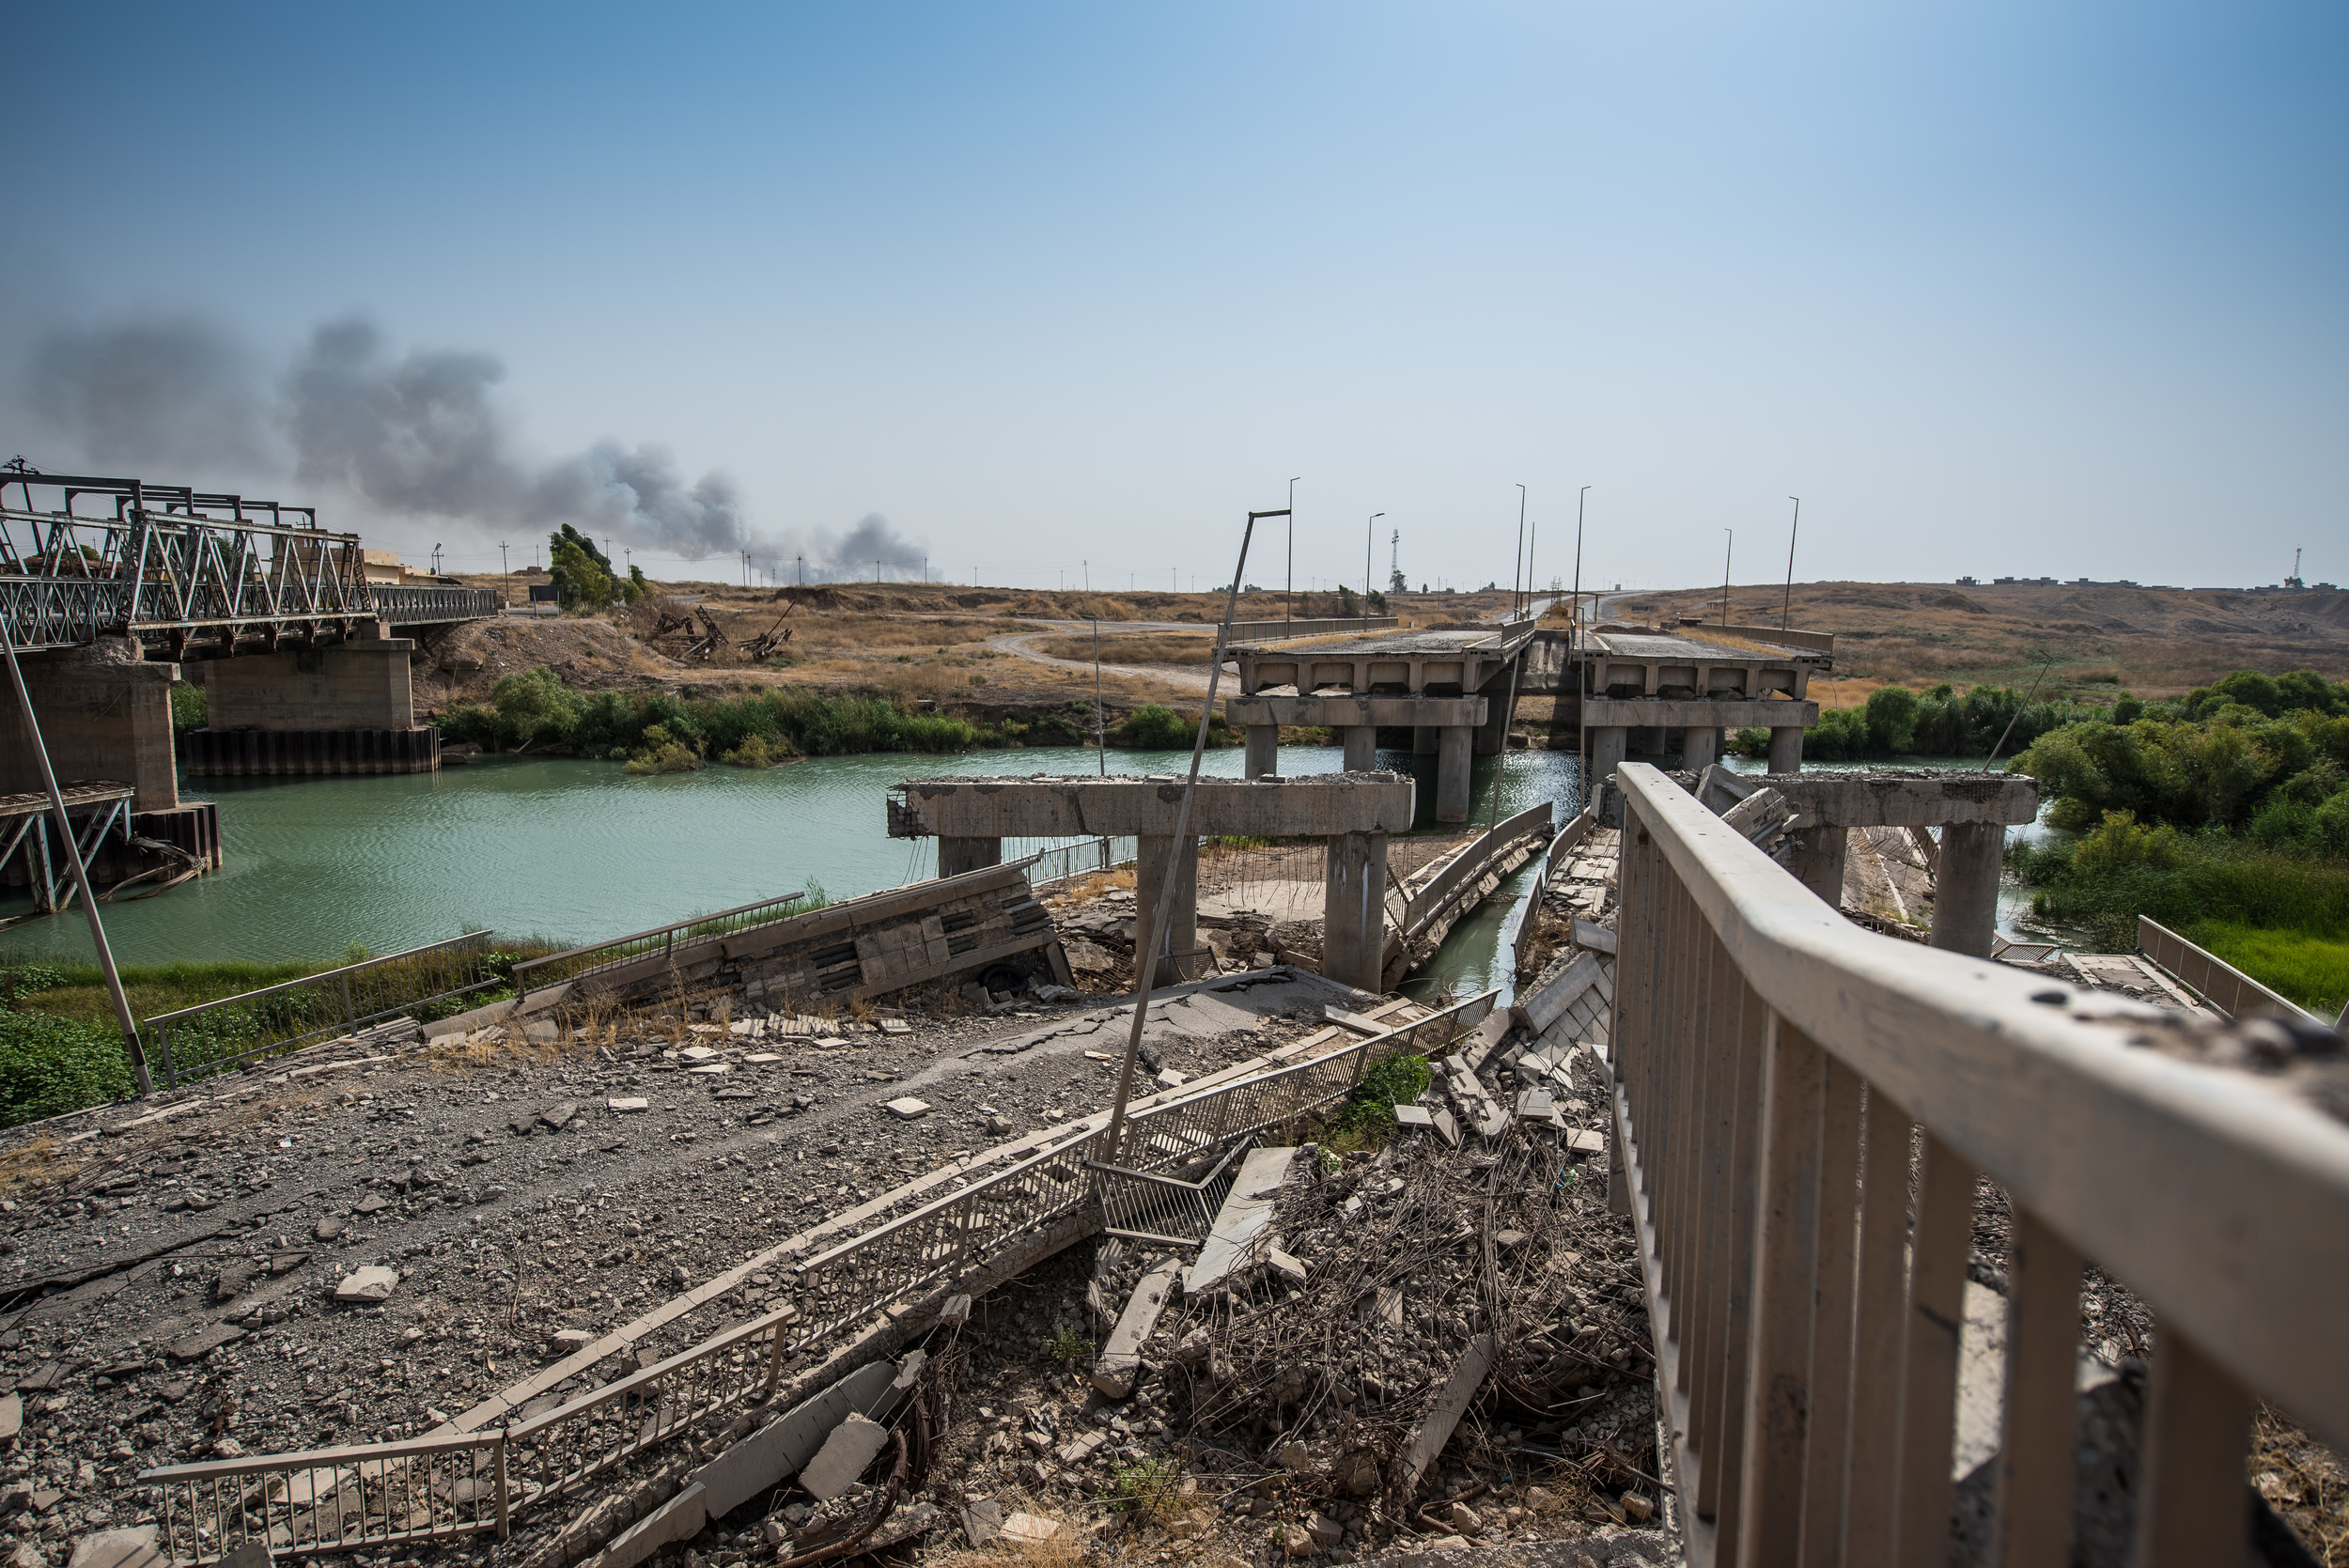 A highway bridge between Mosul and Erbil destroyed by the fighters of the Islamic State on their retreat. In the background the explosion and smoke form a coalition airstrike is visible.